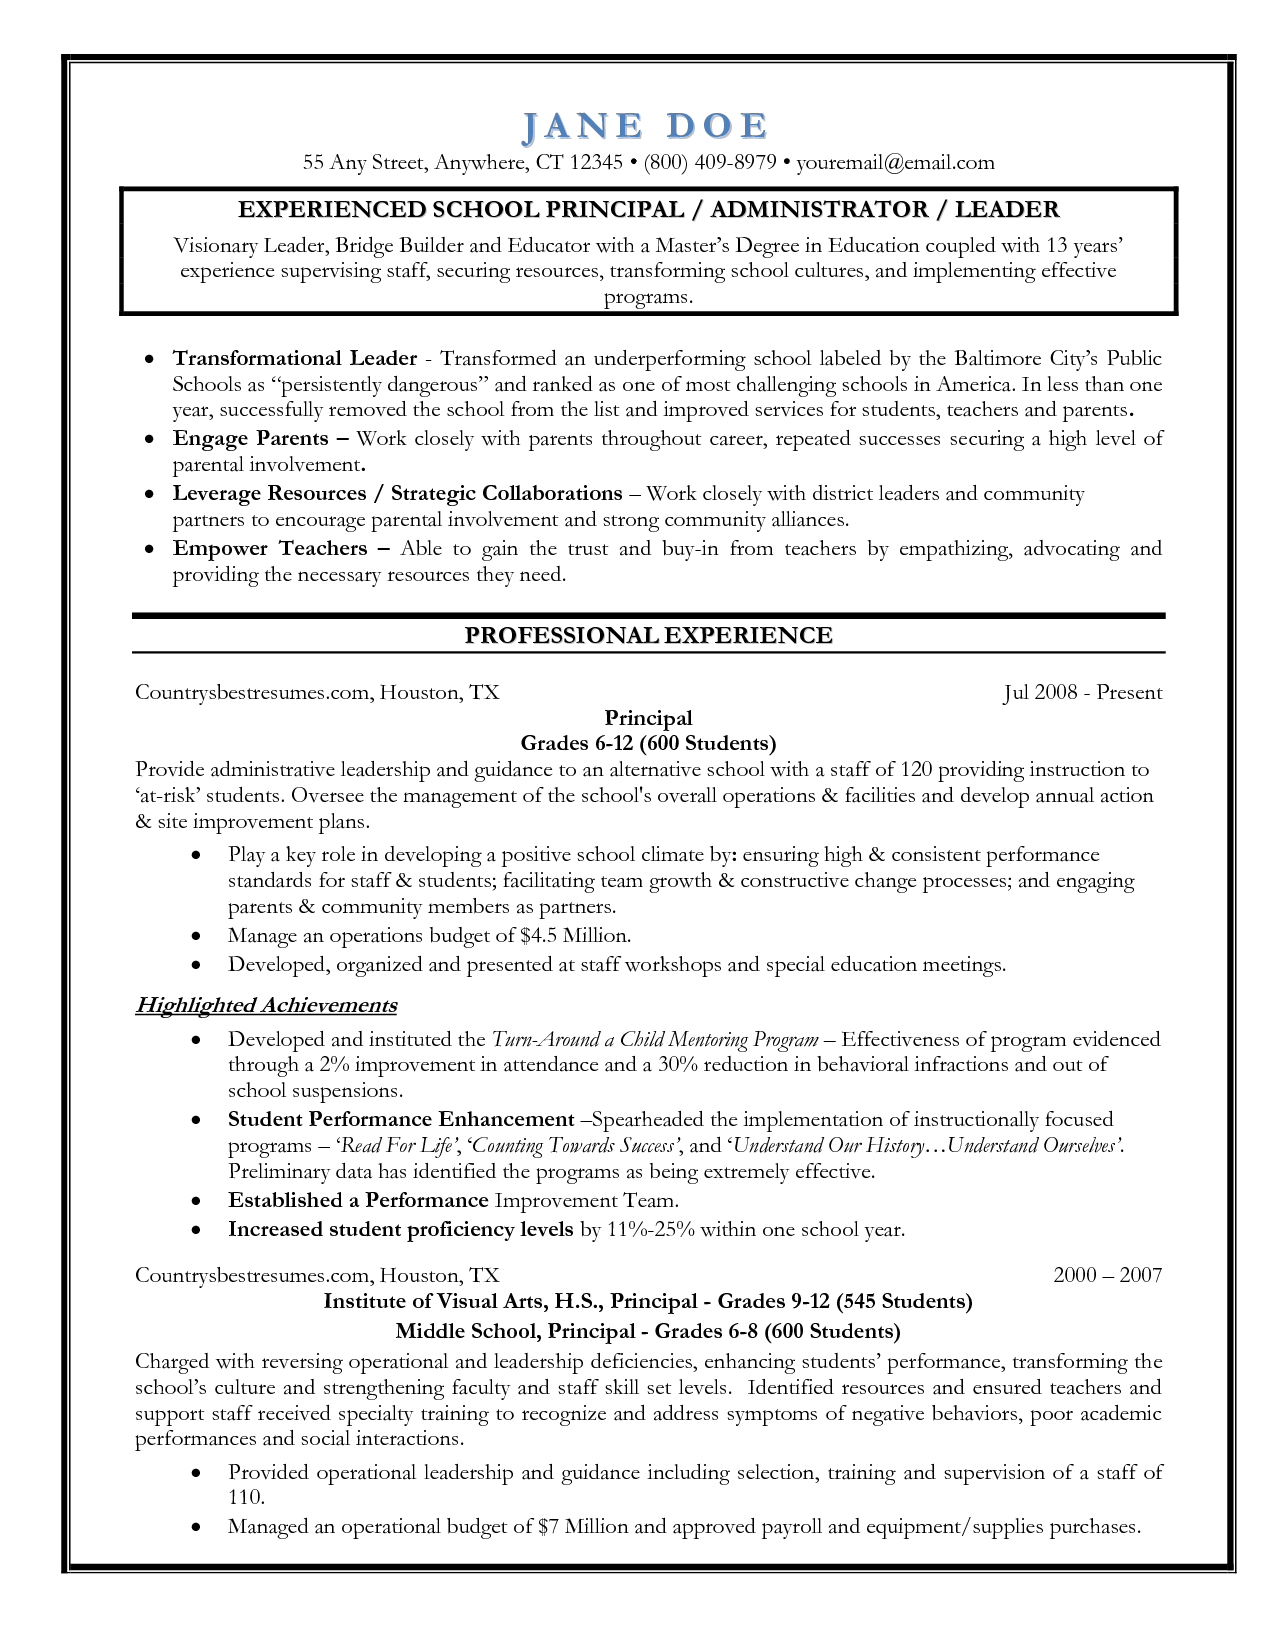 school administrator resume samples - Education Administrative Resume Samples